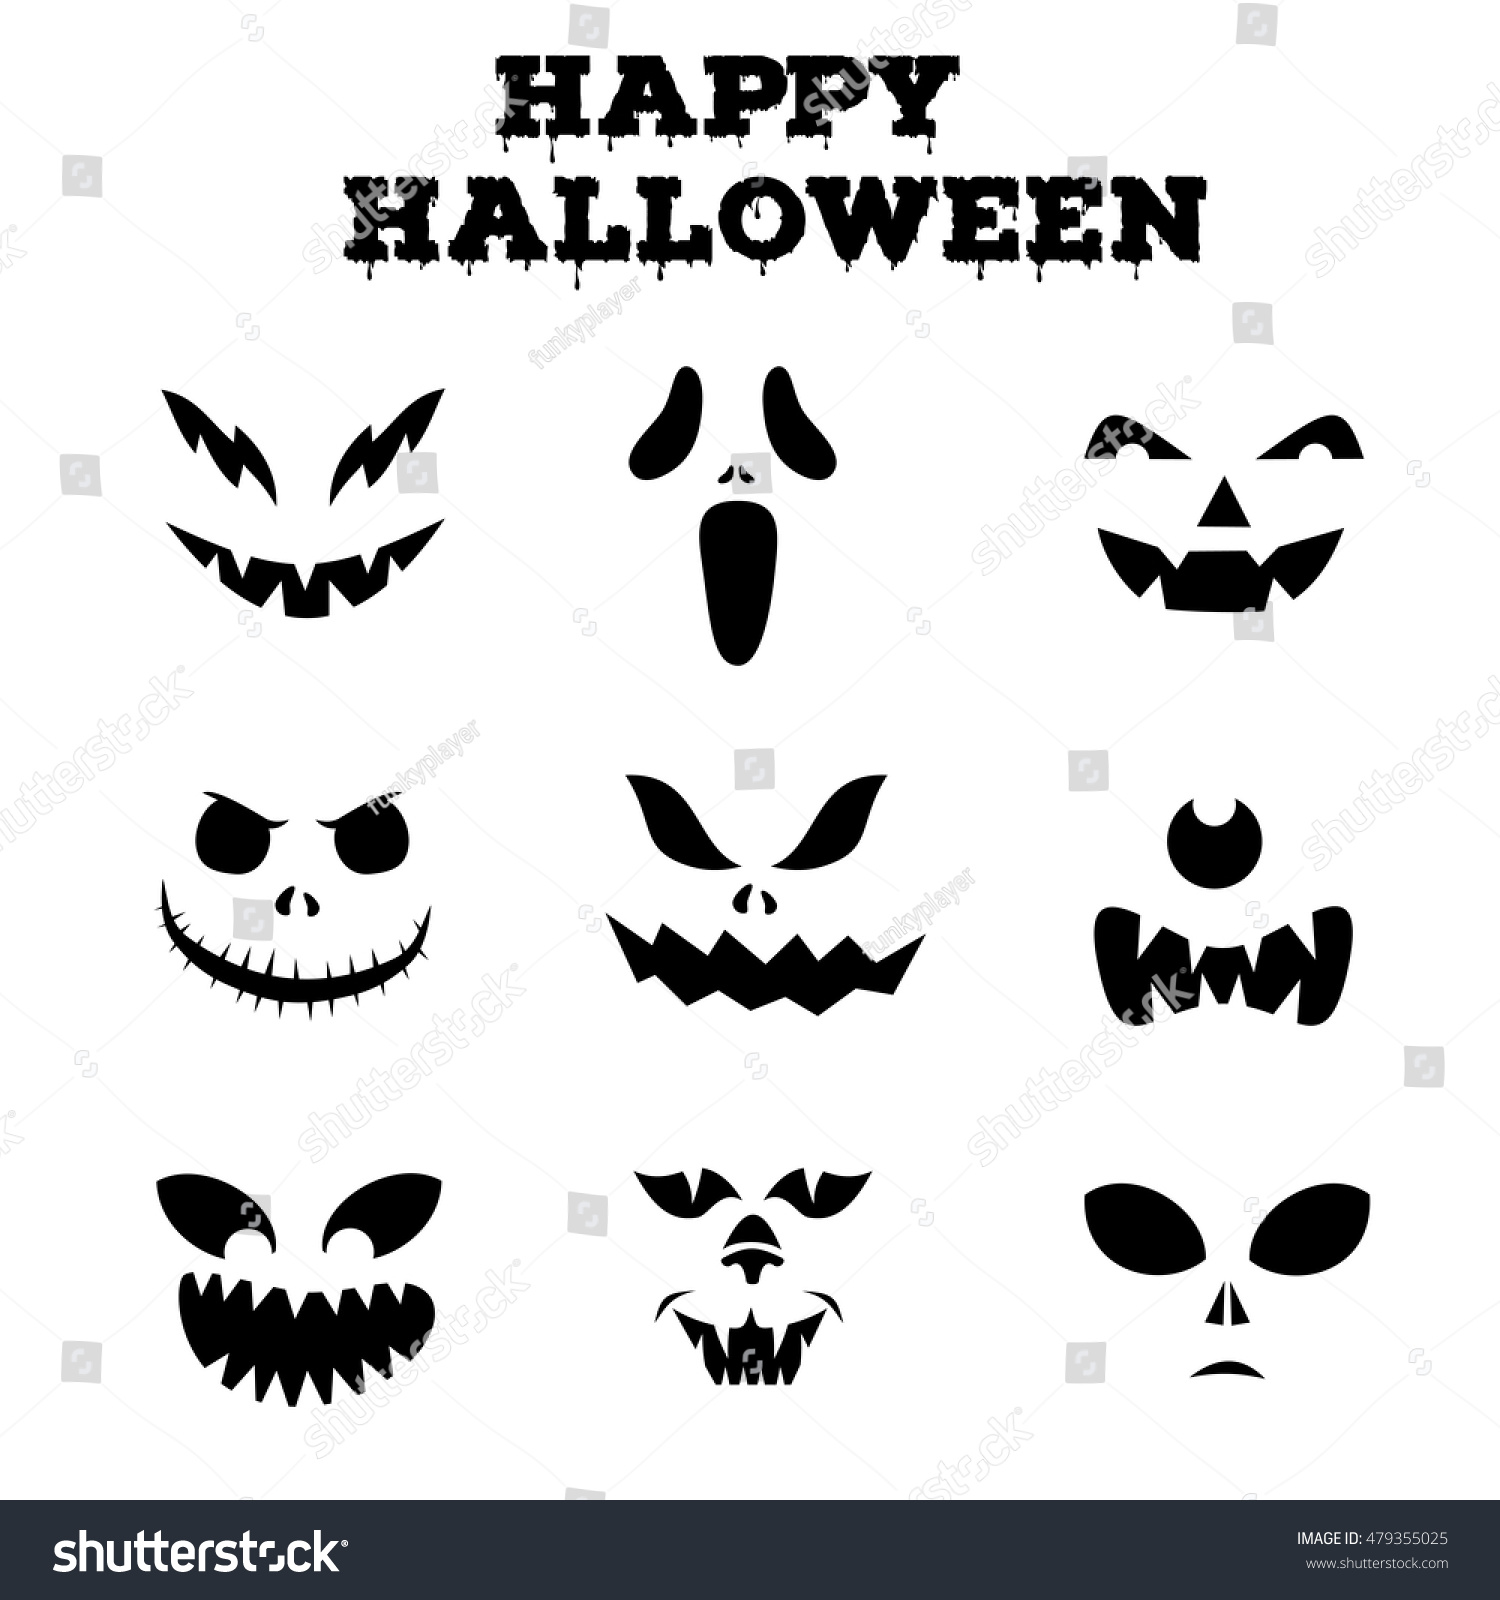 Pretty 010 Editor Templates Big 1 Inch Hexagon Template Square 10 Envelope Template Illustrator 100 Day Glasses Template Youthful 100th Day Hat Template Gray1096 Template Collection Halloween Pumpkins Carved Faces Silhouettes Stock ..